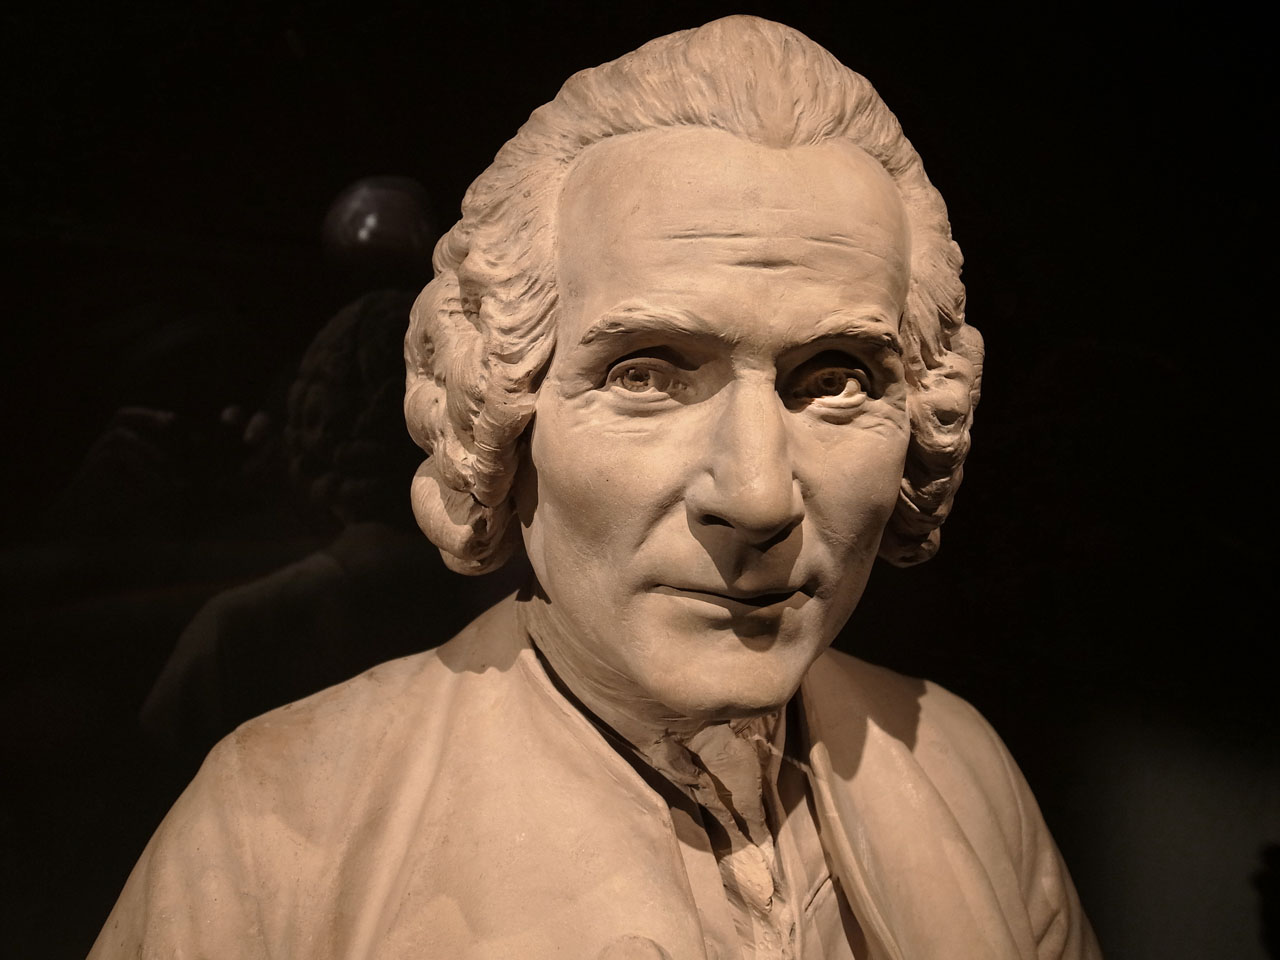 essay on rousseau the father of french revolution Jean-jacques rousseau (1712-1778) was a french philosopher whose ideas and writings underpinned many aspects of the revolution.